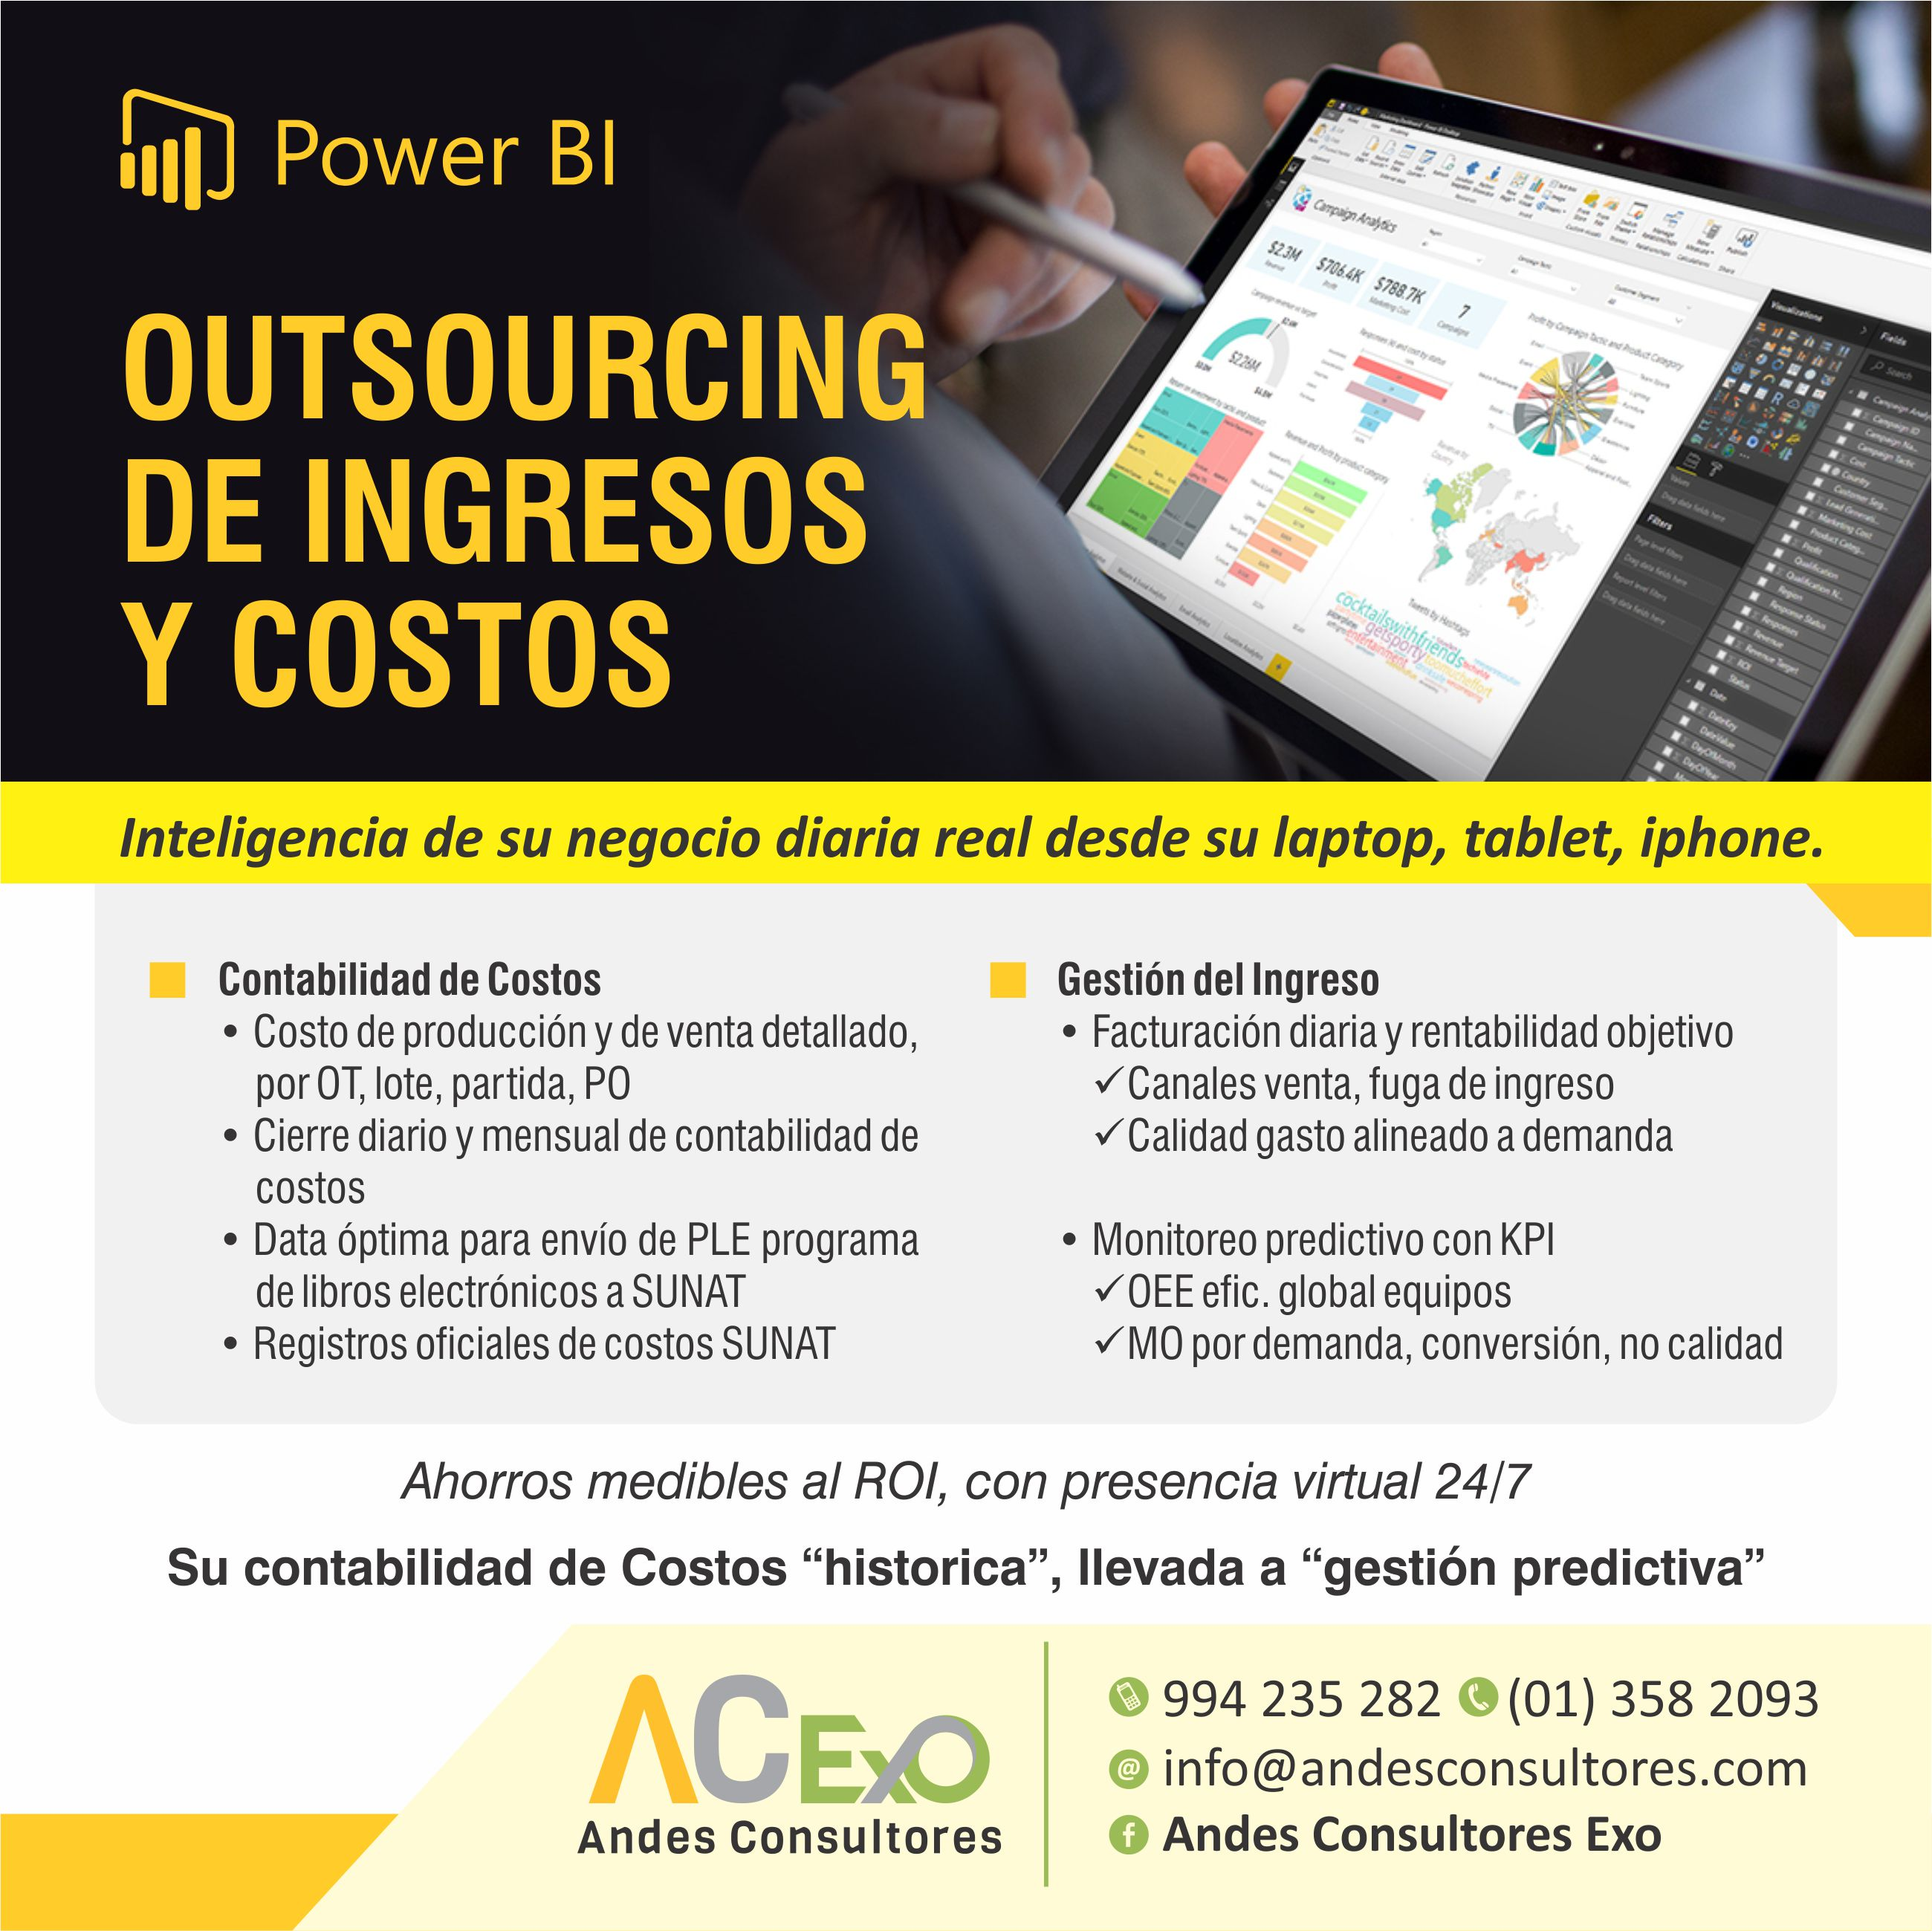 Andes Consultores Exo S.A.C.